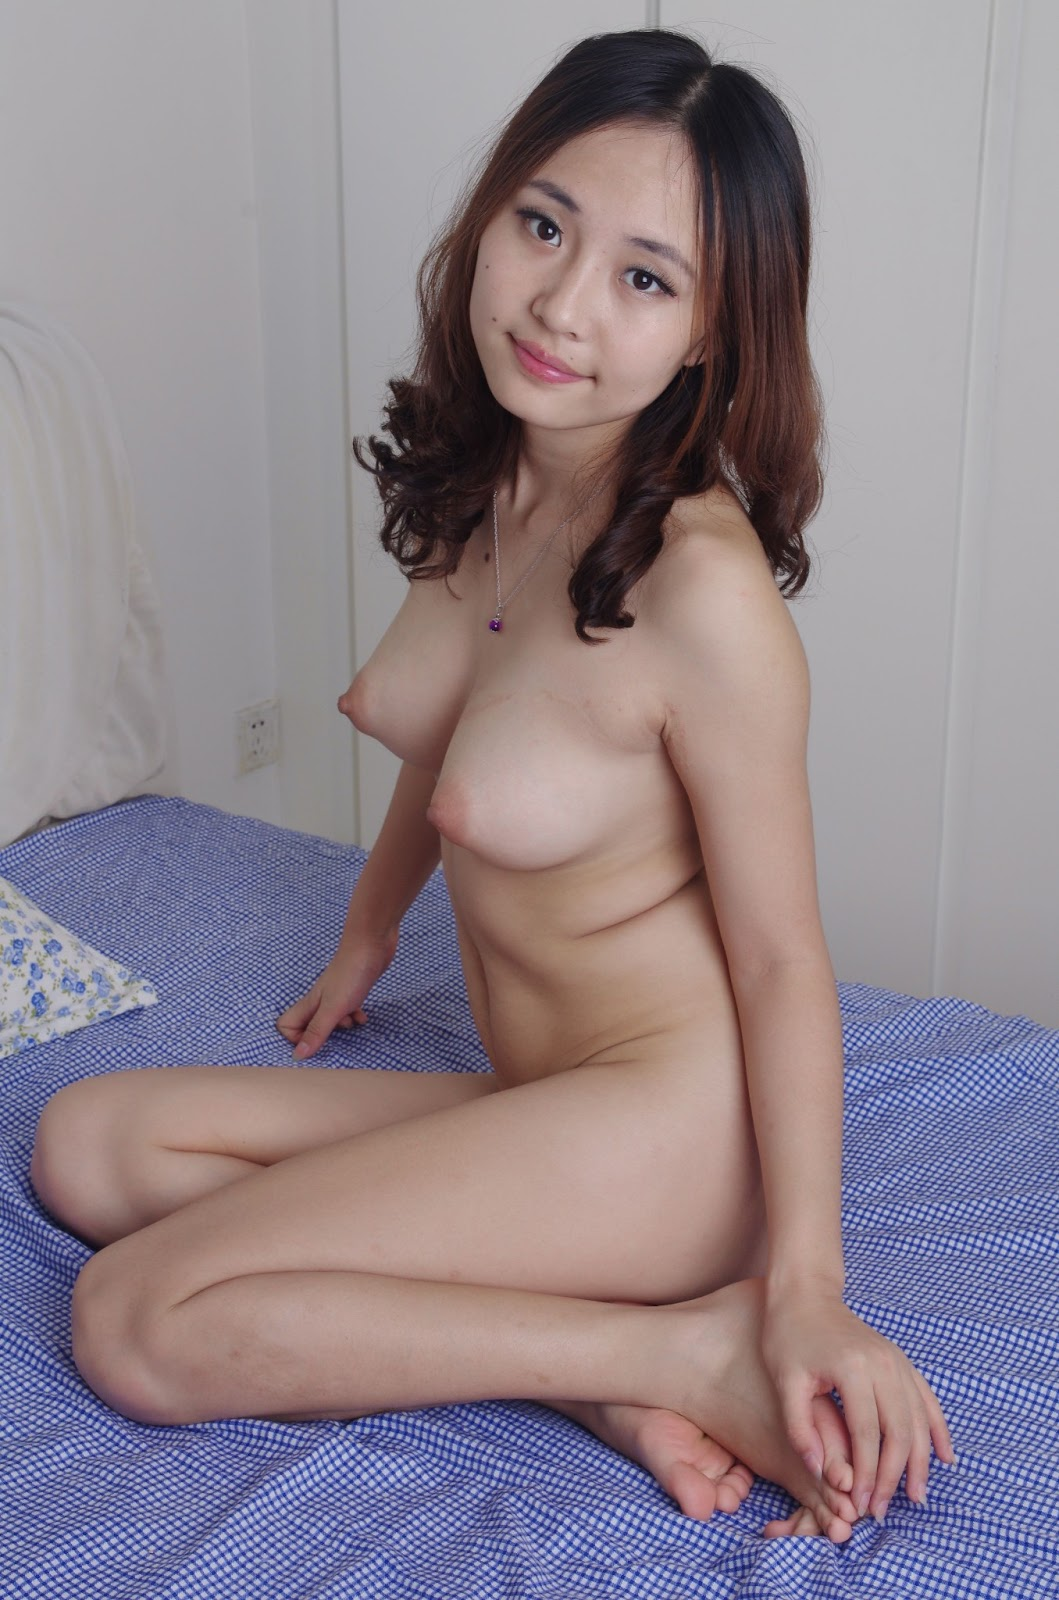 Cute naked thai girls